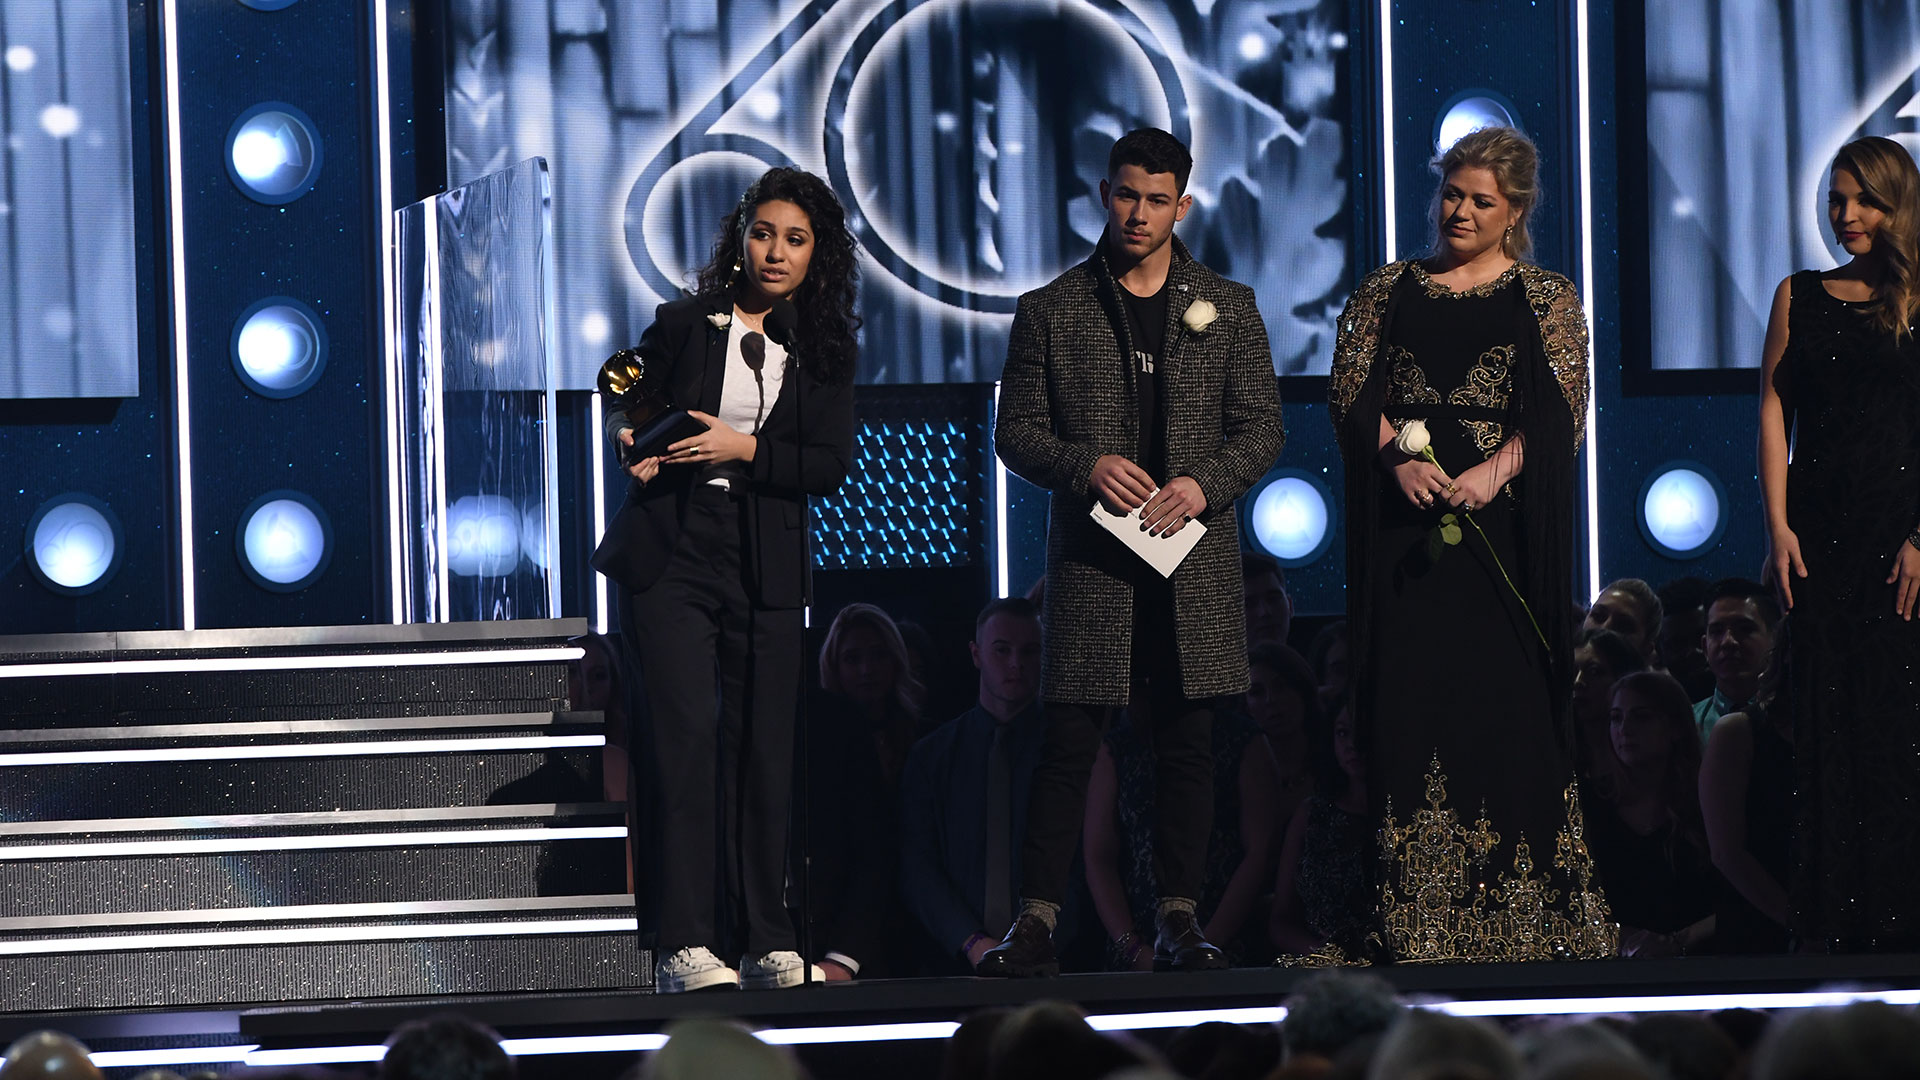 Alessia Cara wins Best New Artist at the 60th Annual GRAMMY Awards.